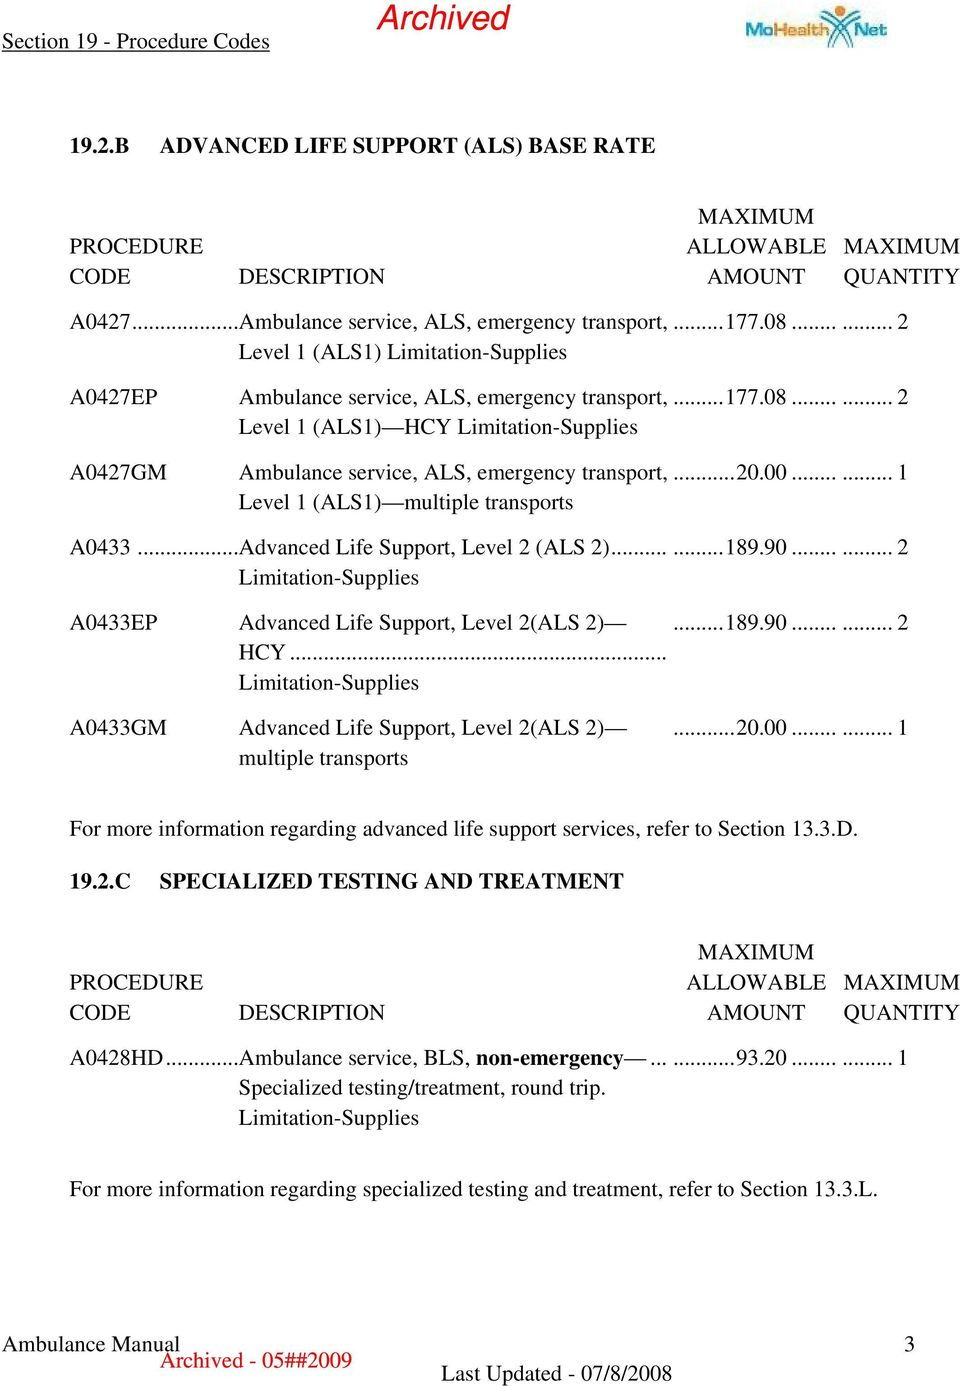 ..... 1 A0433...Advanced Life Support, Level 2 (ALS 2)......189.90...... 2 A0433EP Advanced Life Support, Level 2(ALS 2)...189.90...... 2 HCY.